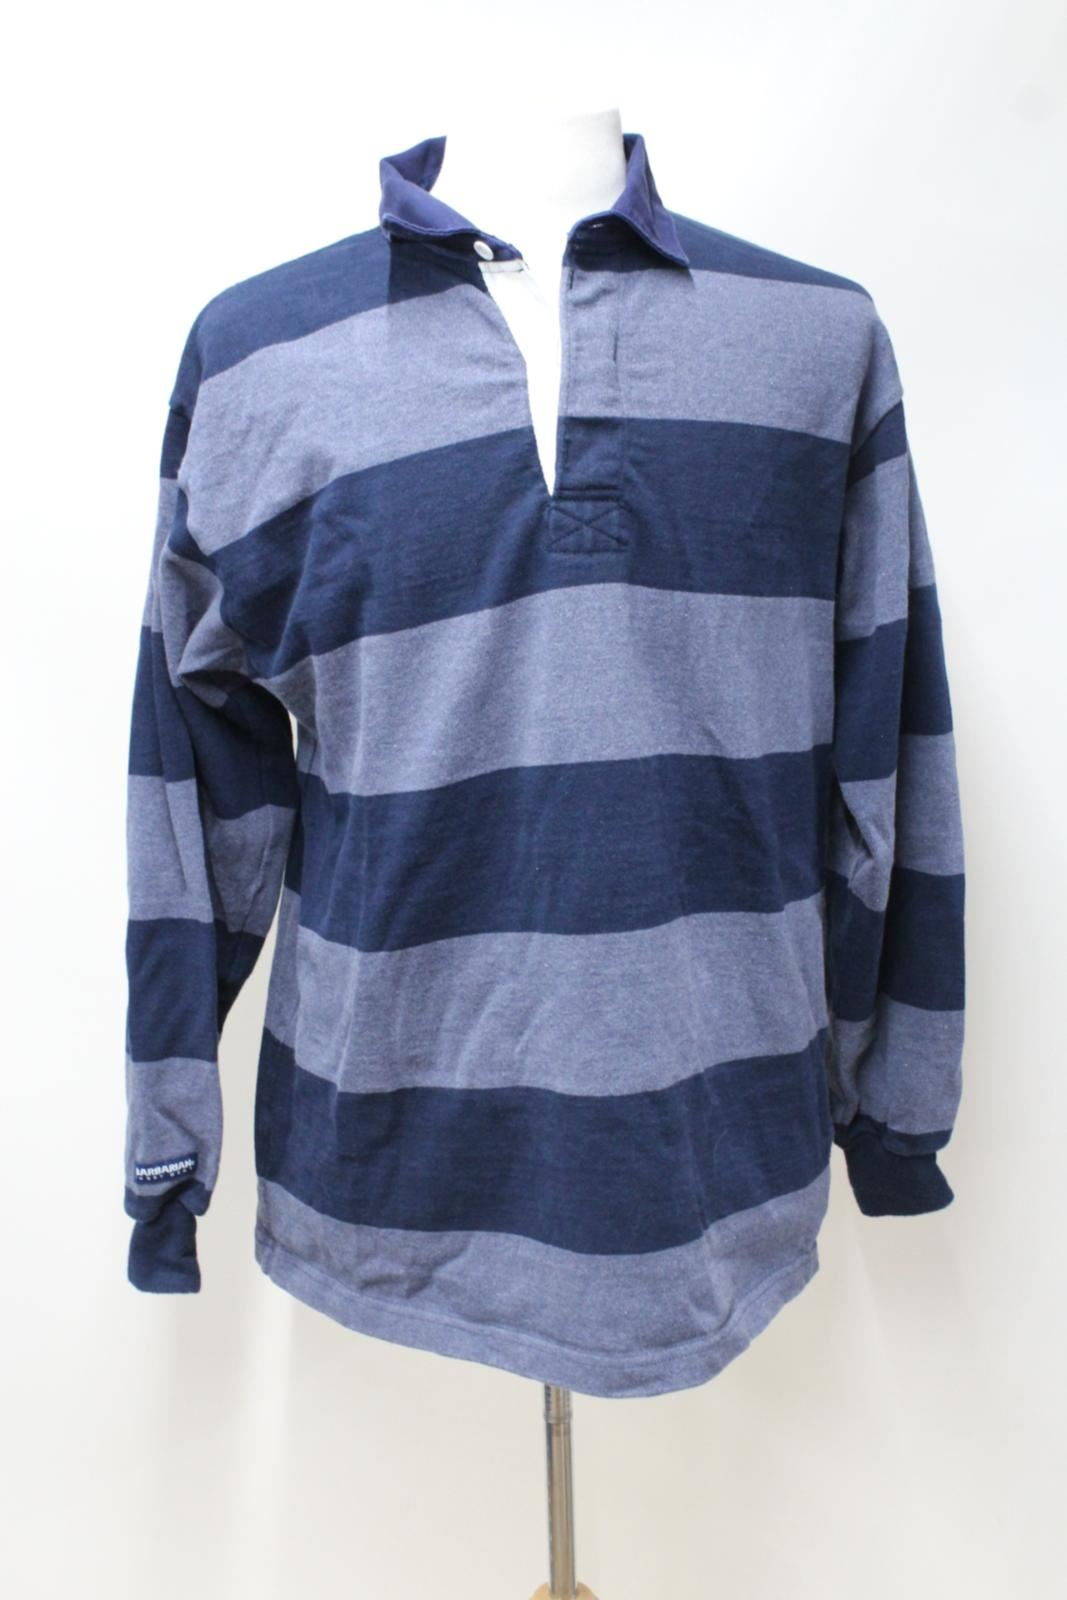 BARBARIAN Men's bluee Navy Cotton Striped Long Sleeve Rugby Shirt Top XL NEW